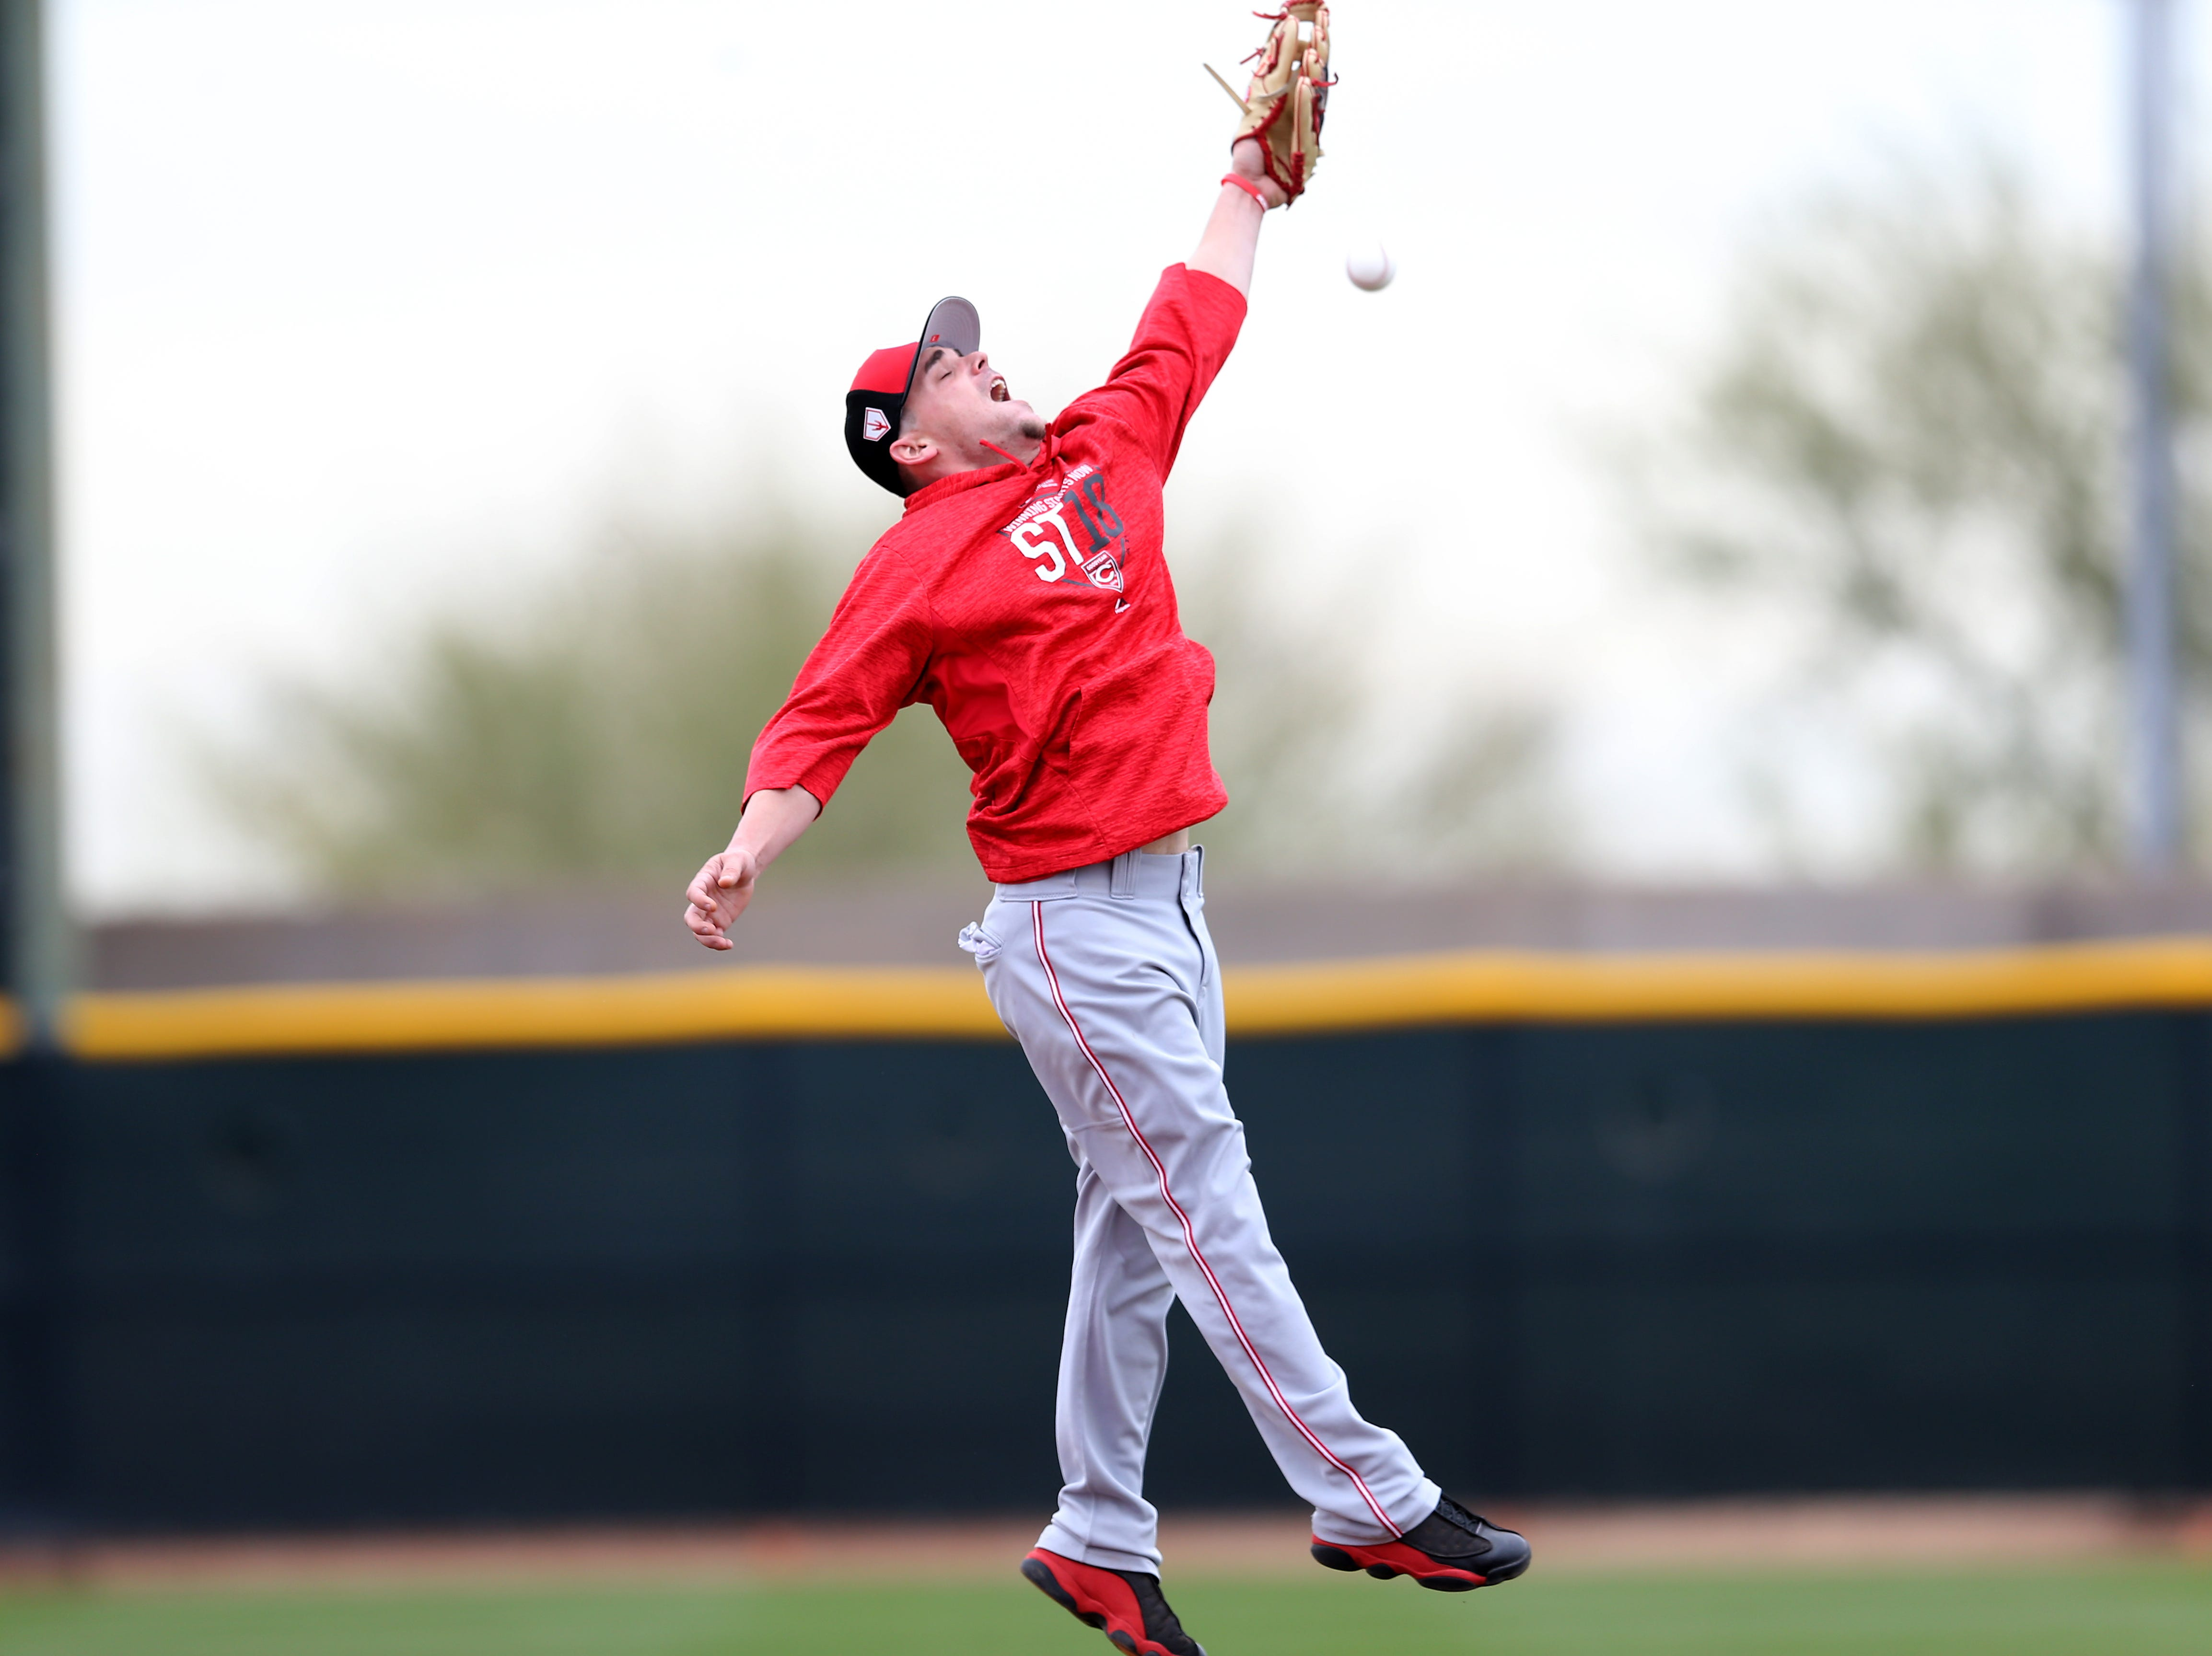 Cincinnati Reds second baseman Scooter Gennett (3) leaps for a ball during drills, Wednesday, Feb. 13, 2019, at the Cincinnati Reds spring training facility in Goodyear, Arizona.